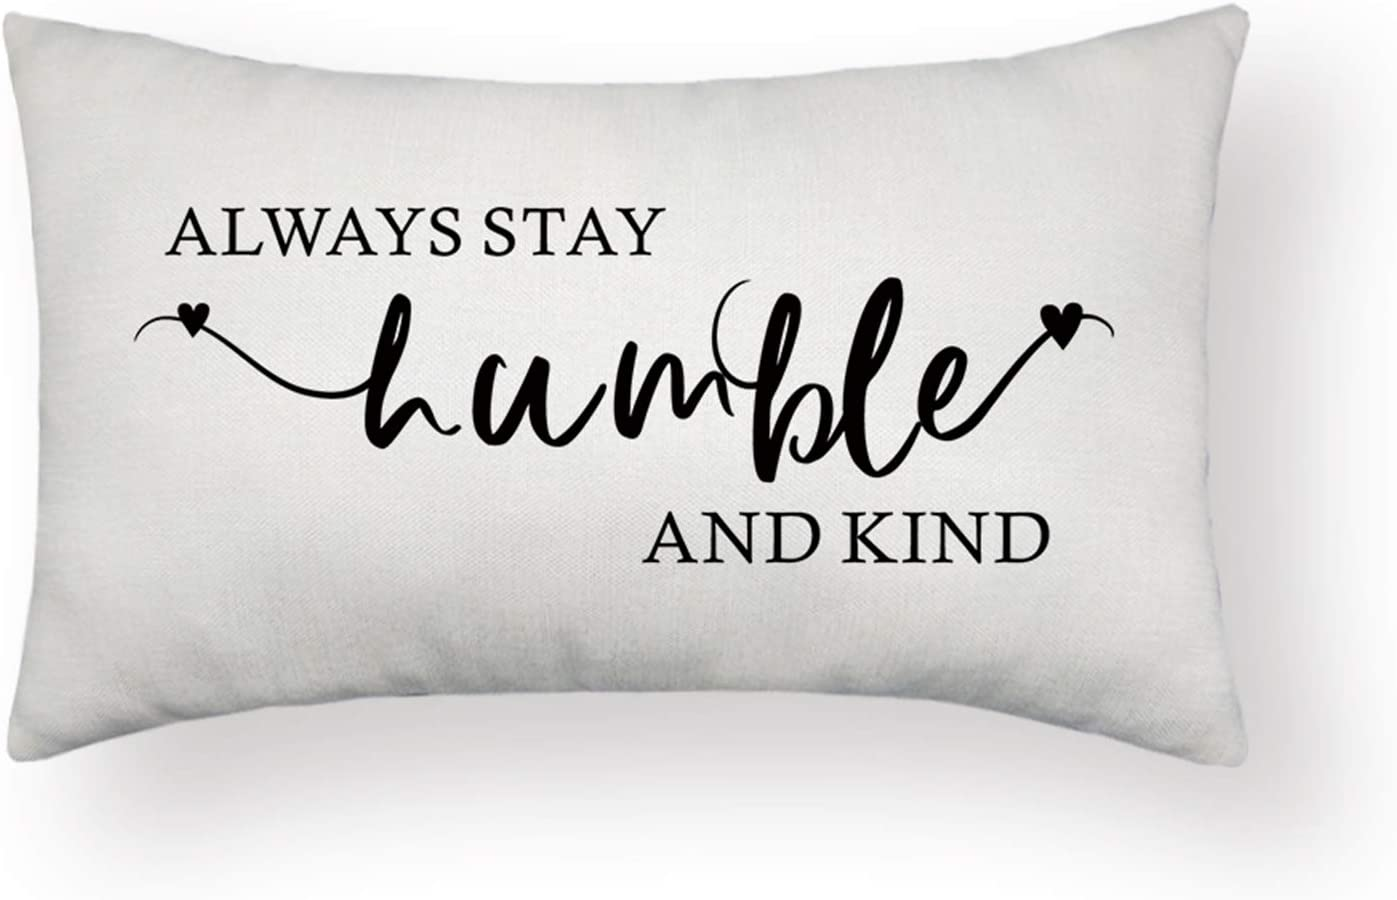 HOMANGA Farmhouse Pillow Covers, Always Stay Humble and Kind Quotes Throw Pillow Covers, 12x20 Inch for Family Home Decor, Decorative Rustic Style Throw Pillow Cases